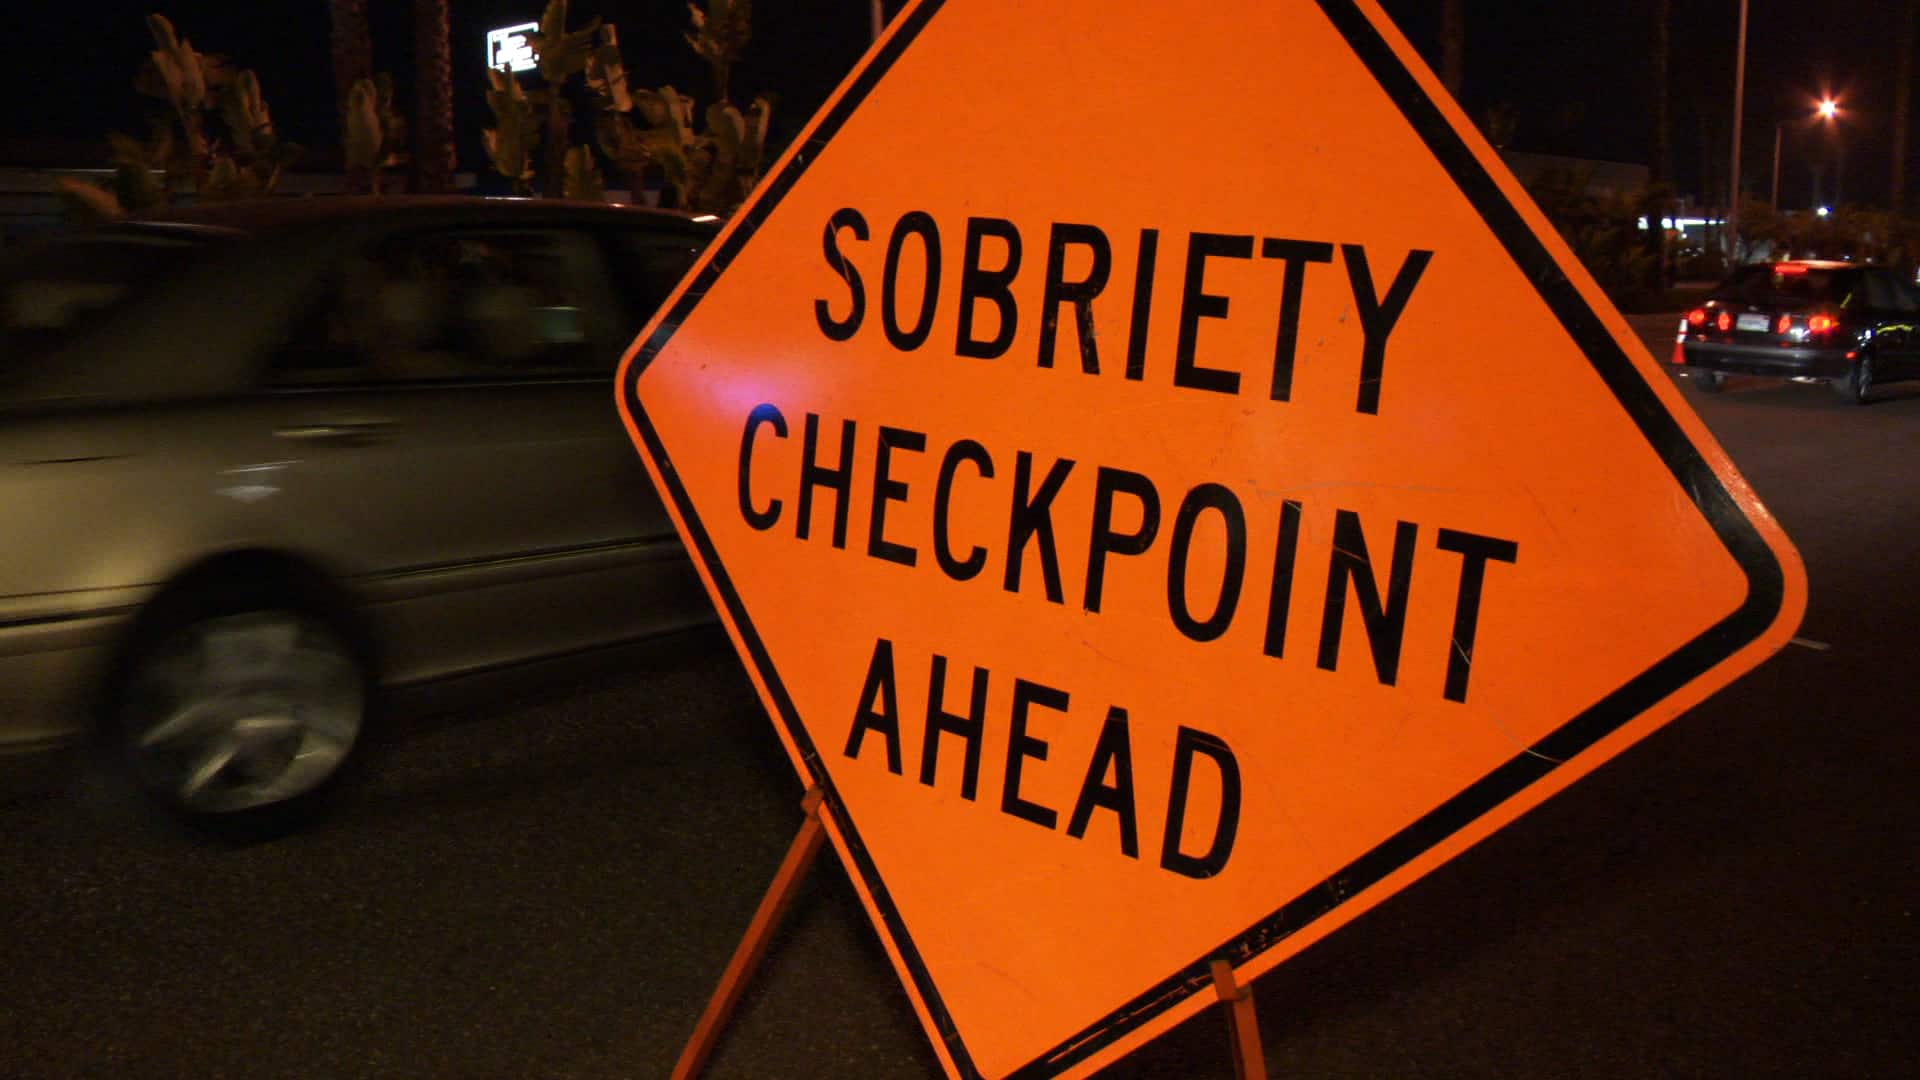 Virginia, sobriety, attorney, dui, legal, lawyer, sr22, non-owner, non-driver, without a car, checkpoint, rehab